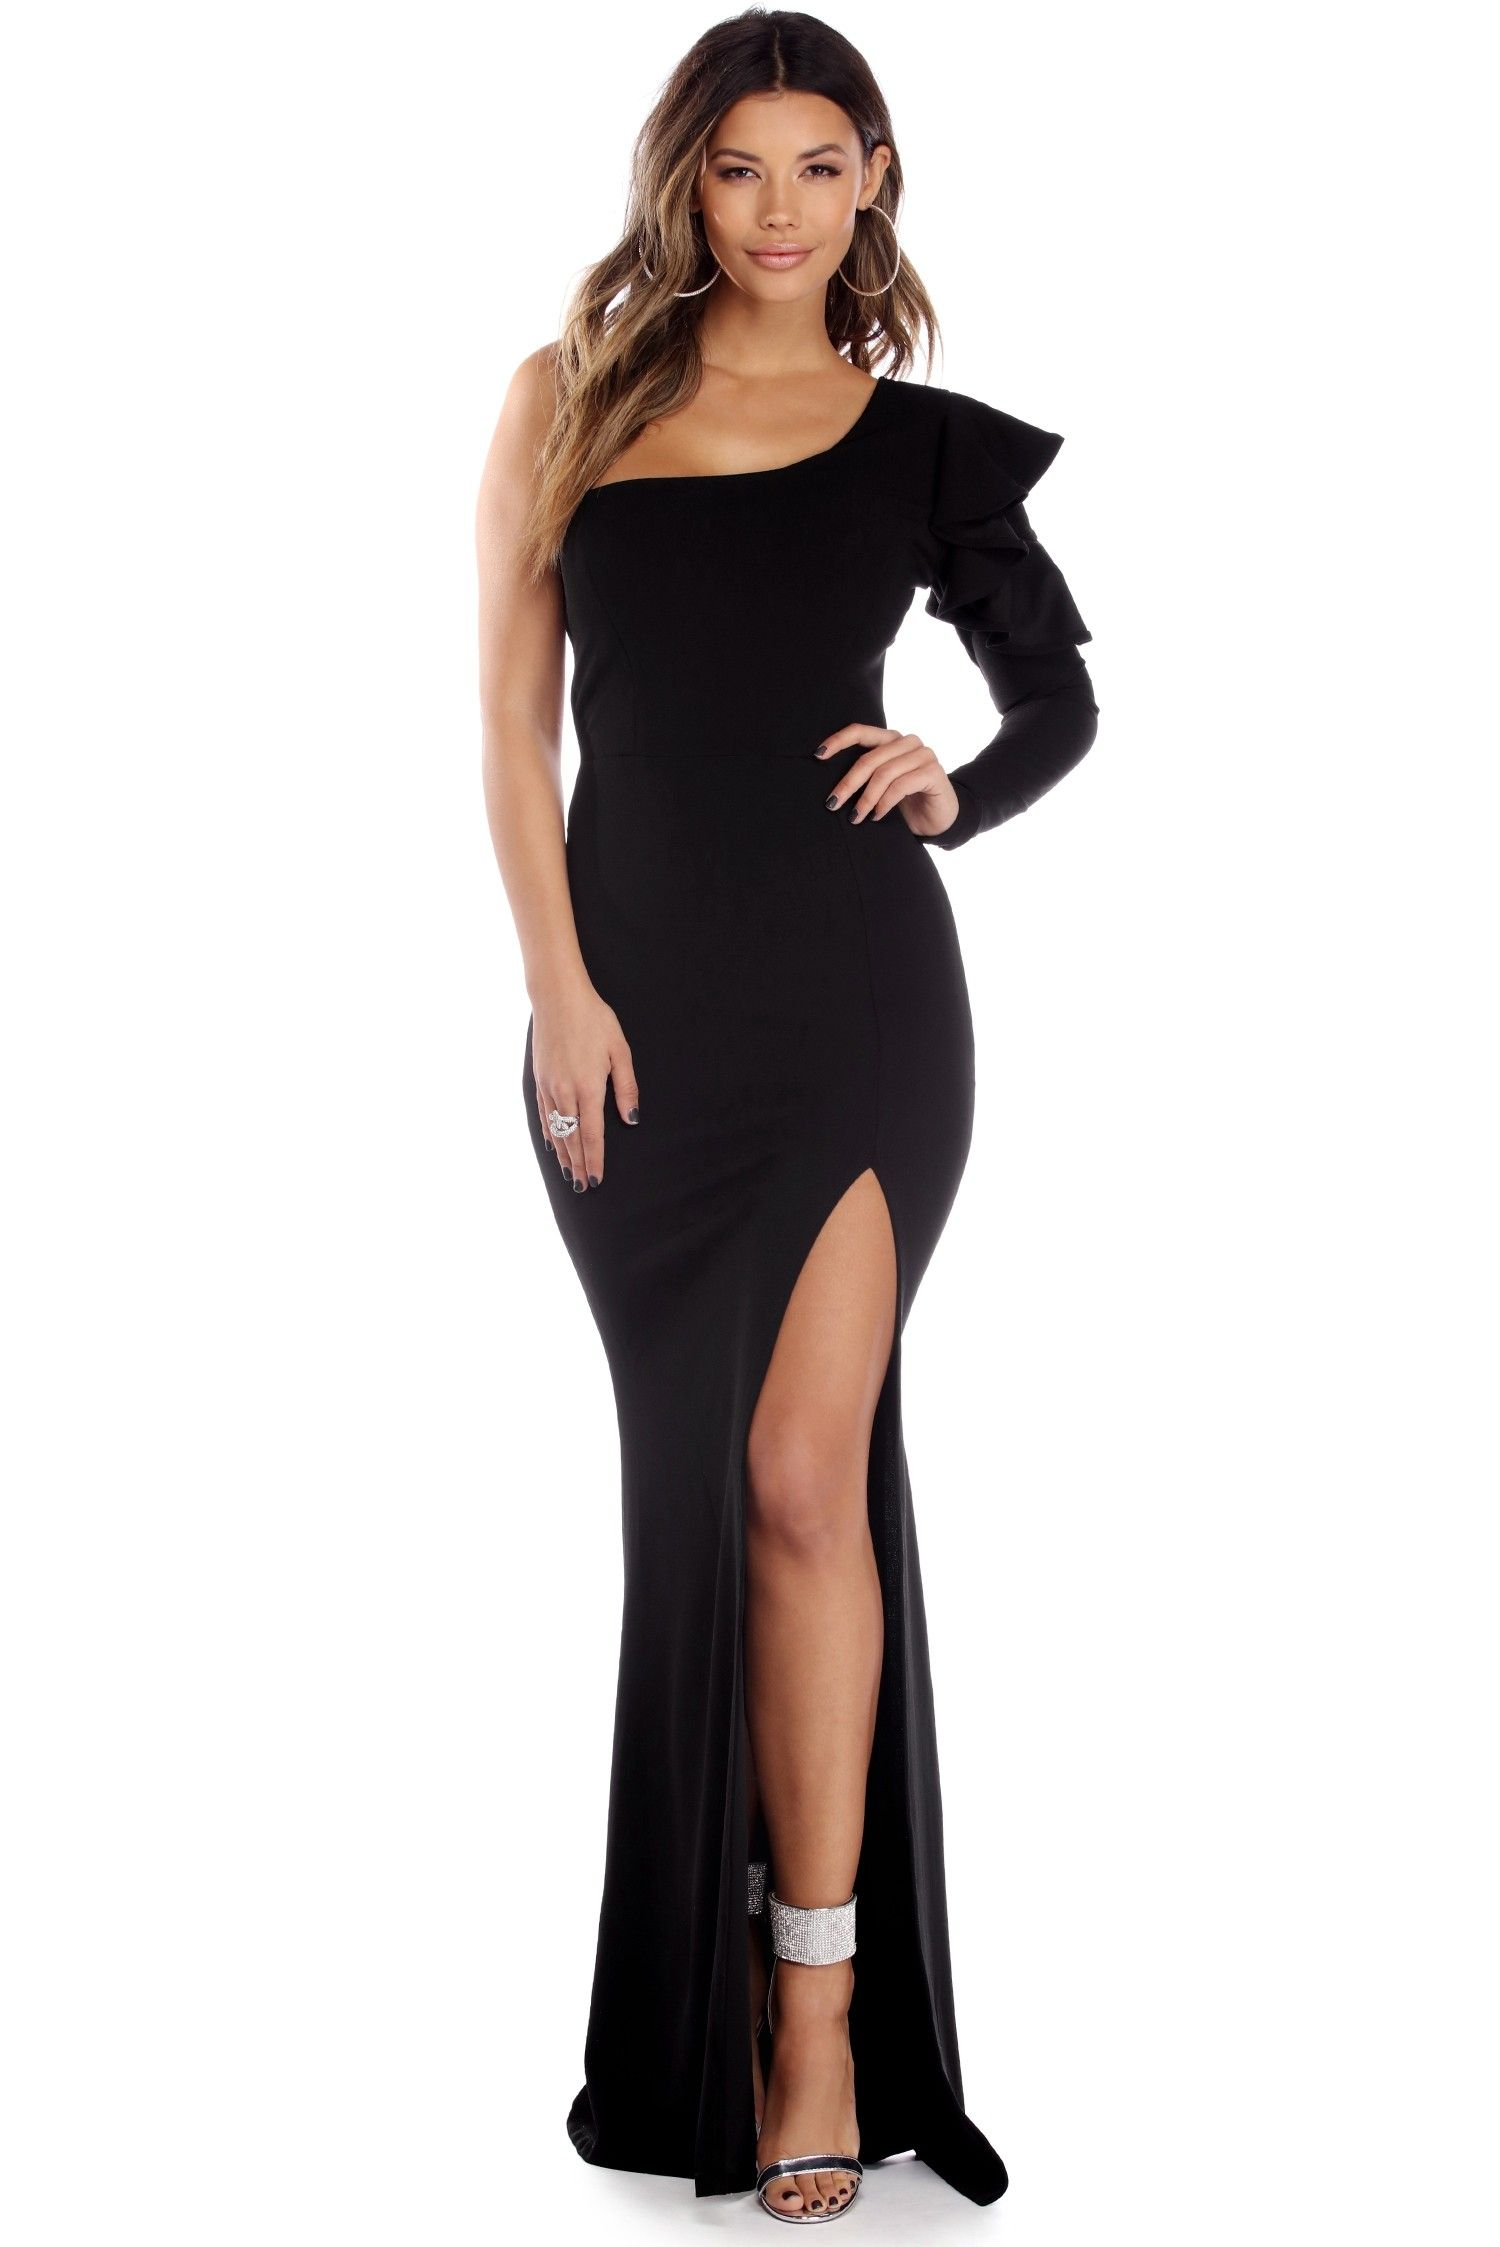 Aylin black one shoulder ruffle crepe dress evening dresses